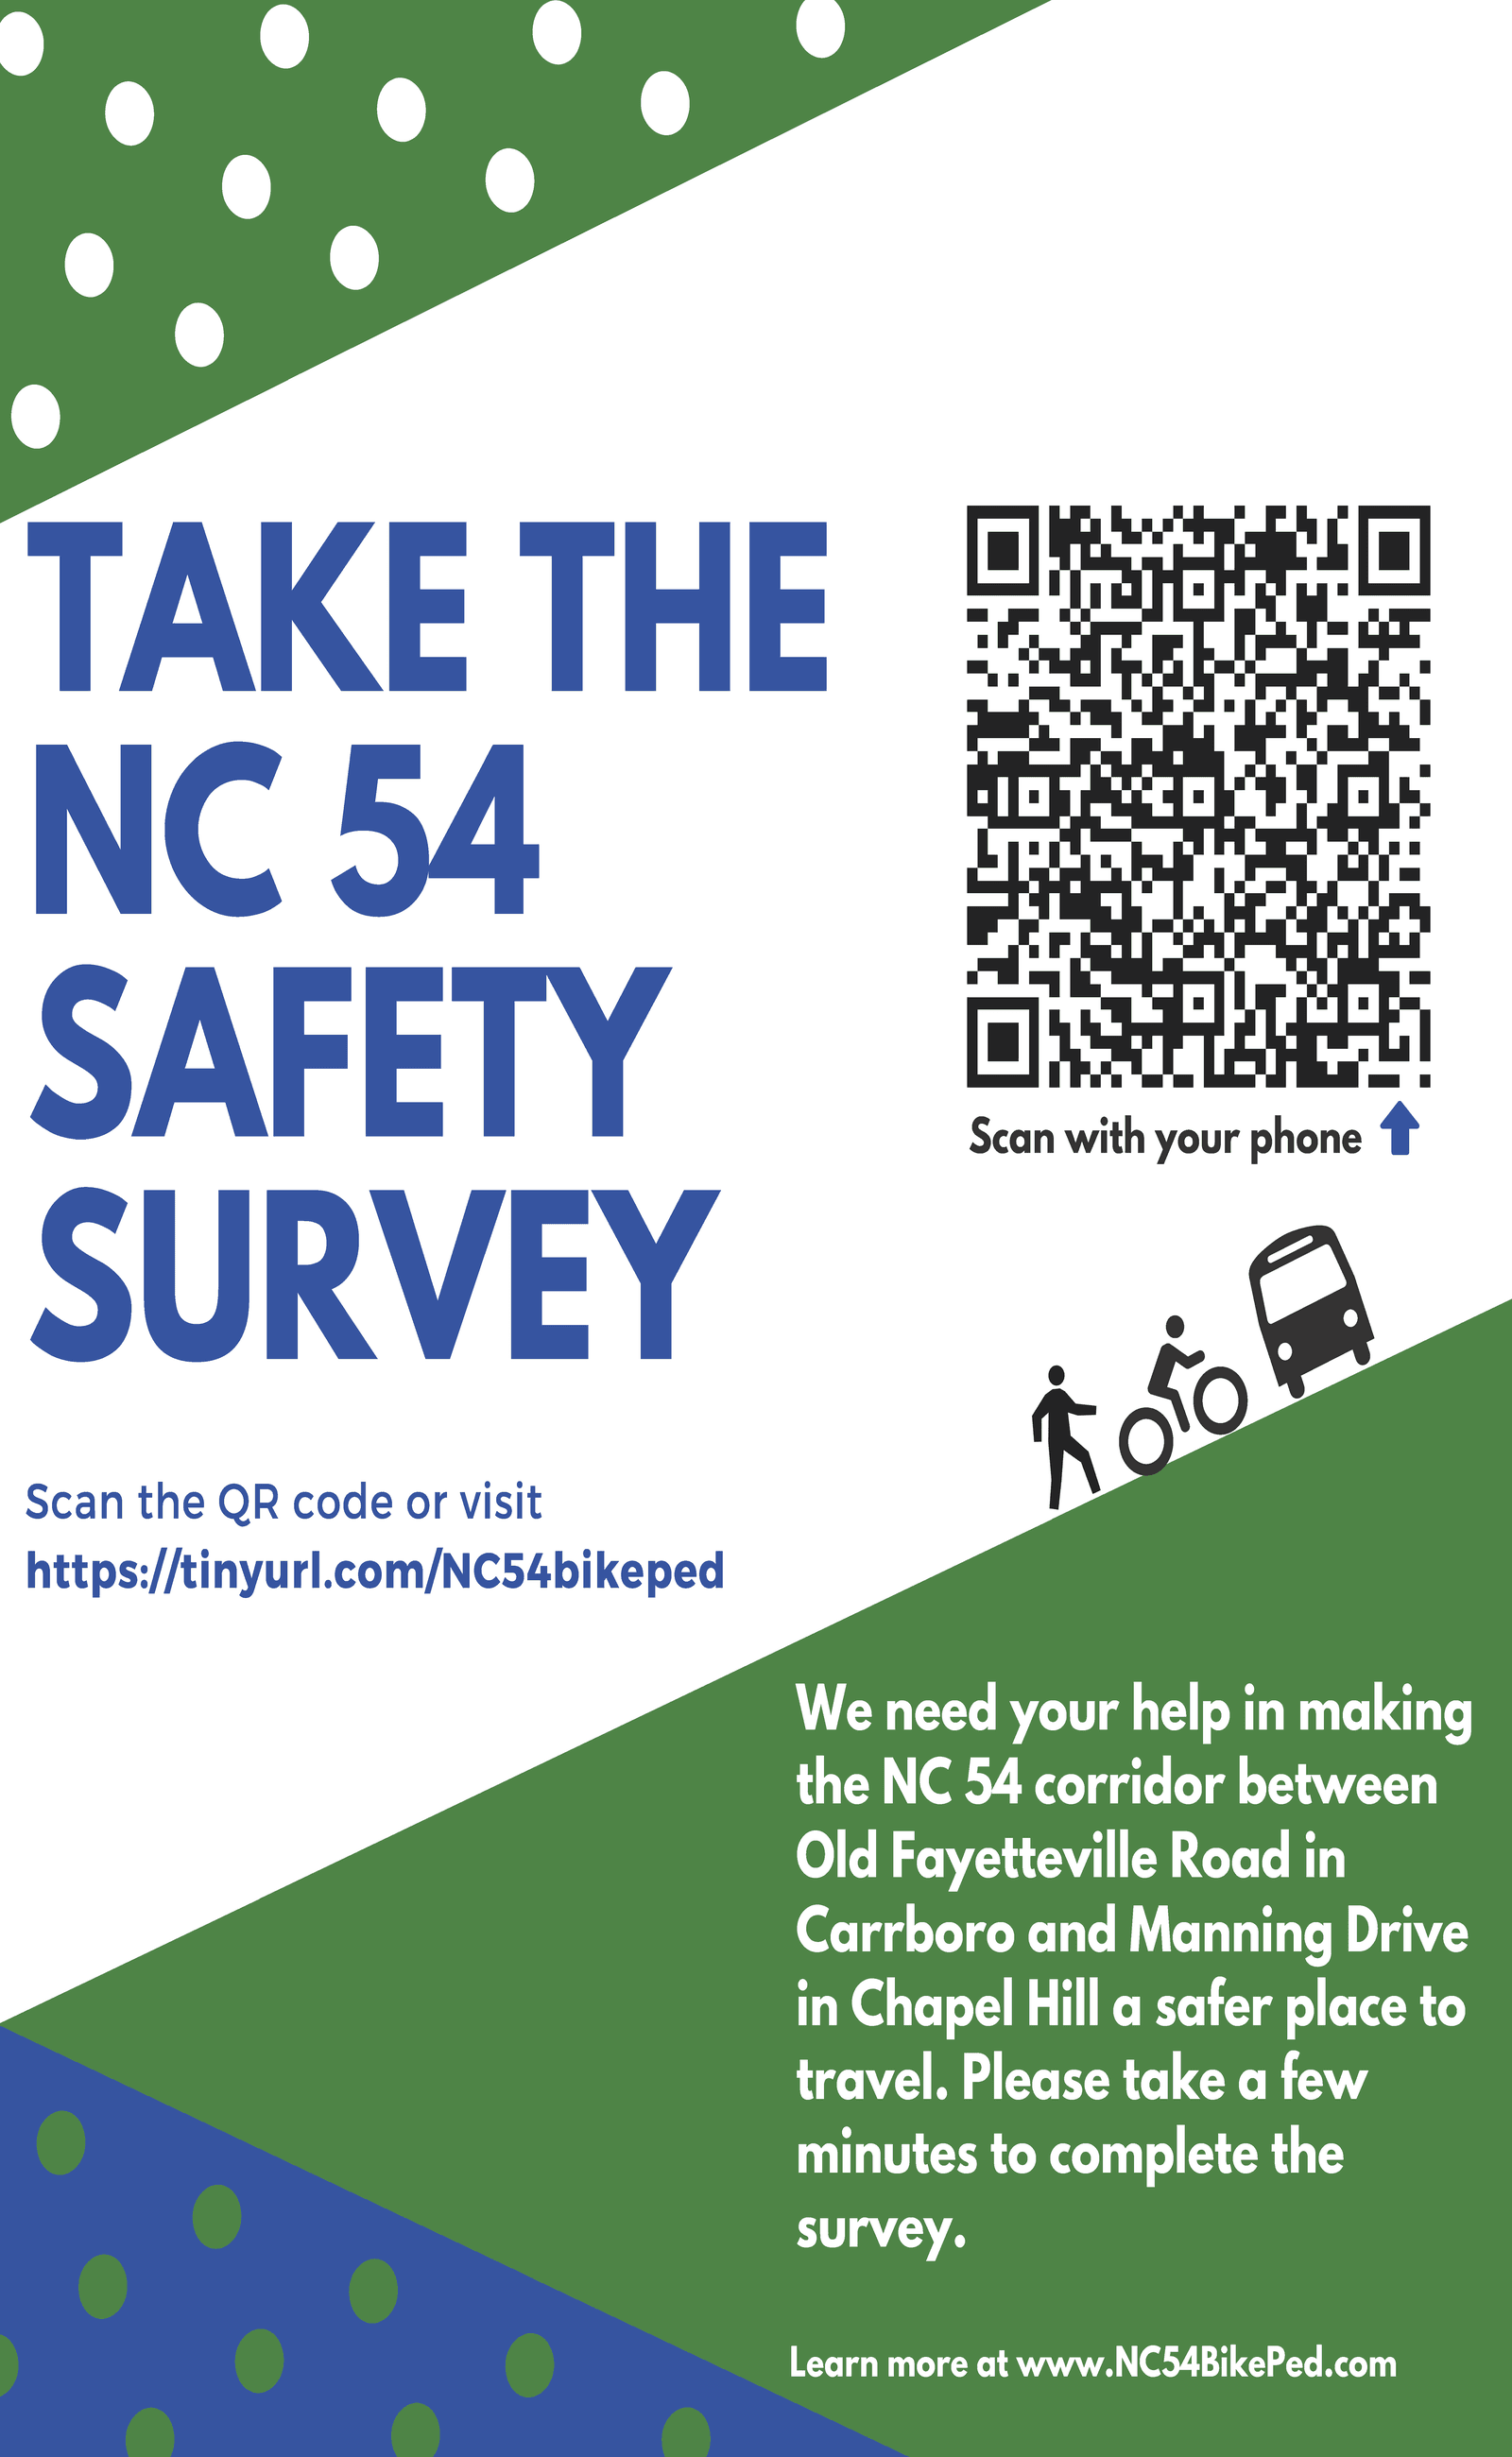 NC 54 Survey flyer